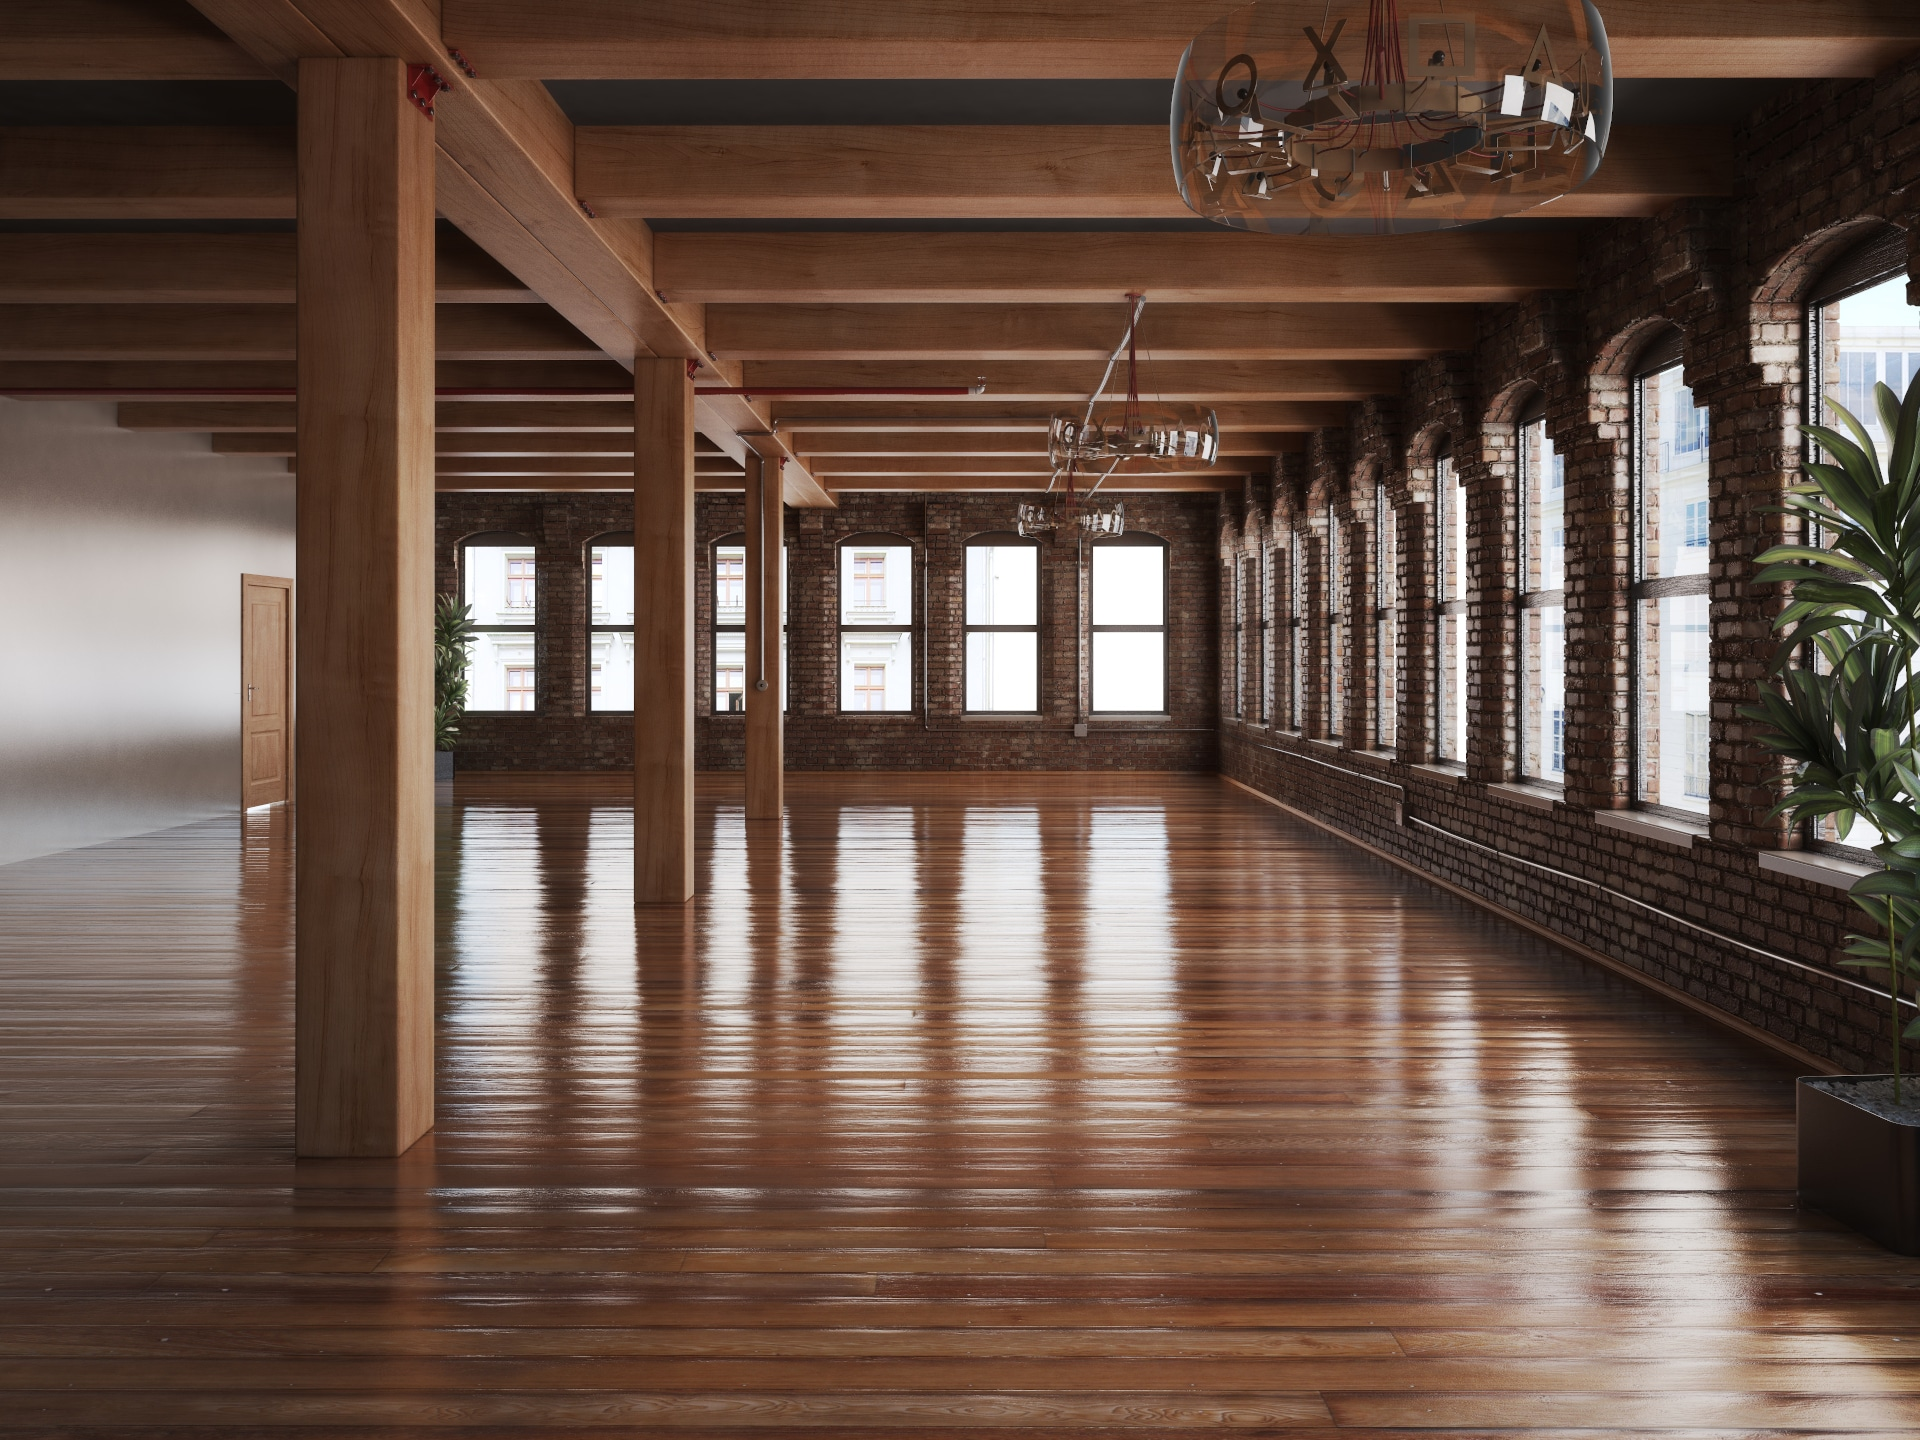 wood accent empty room PDR8YP8